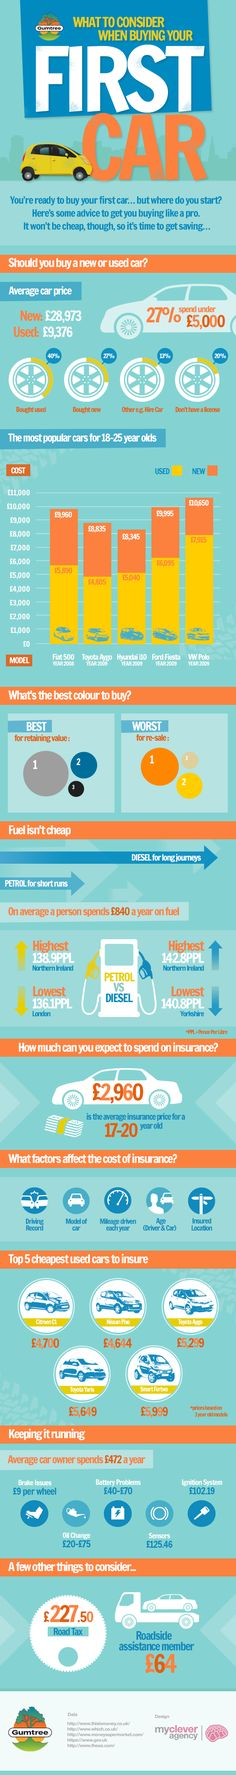 #Gumtree First Car Buyer Infographic